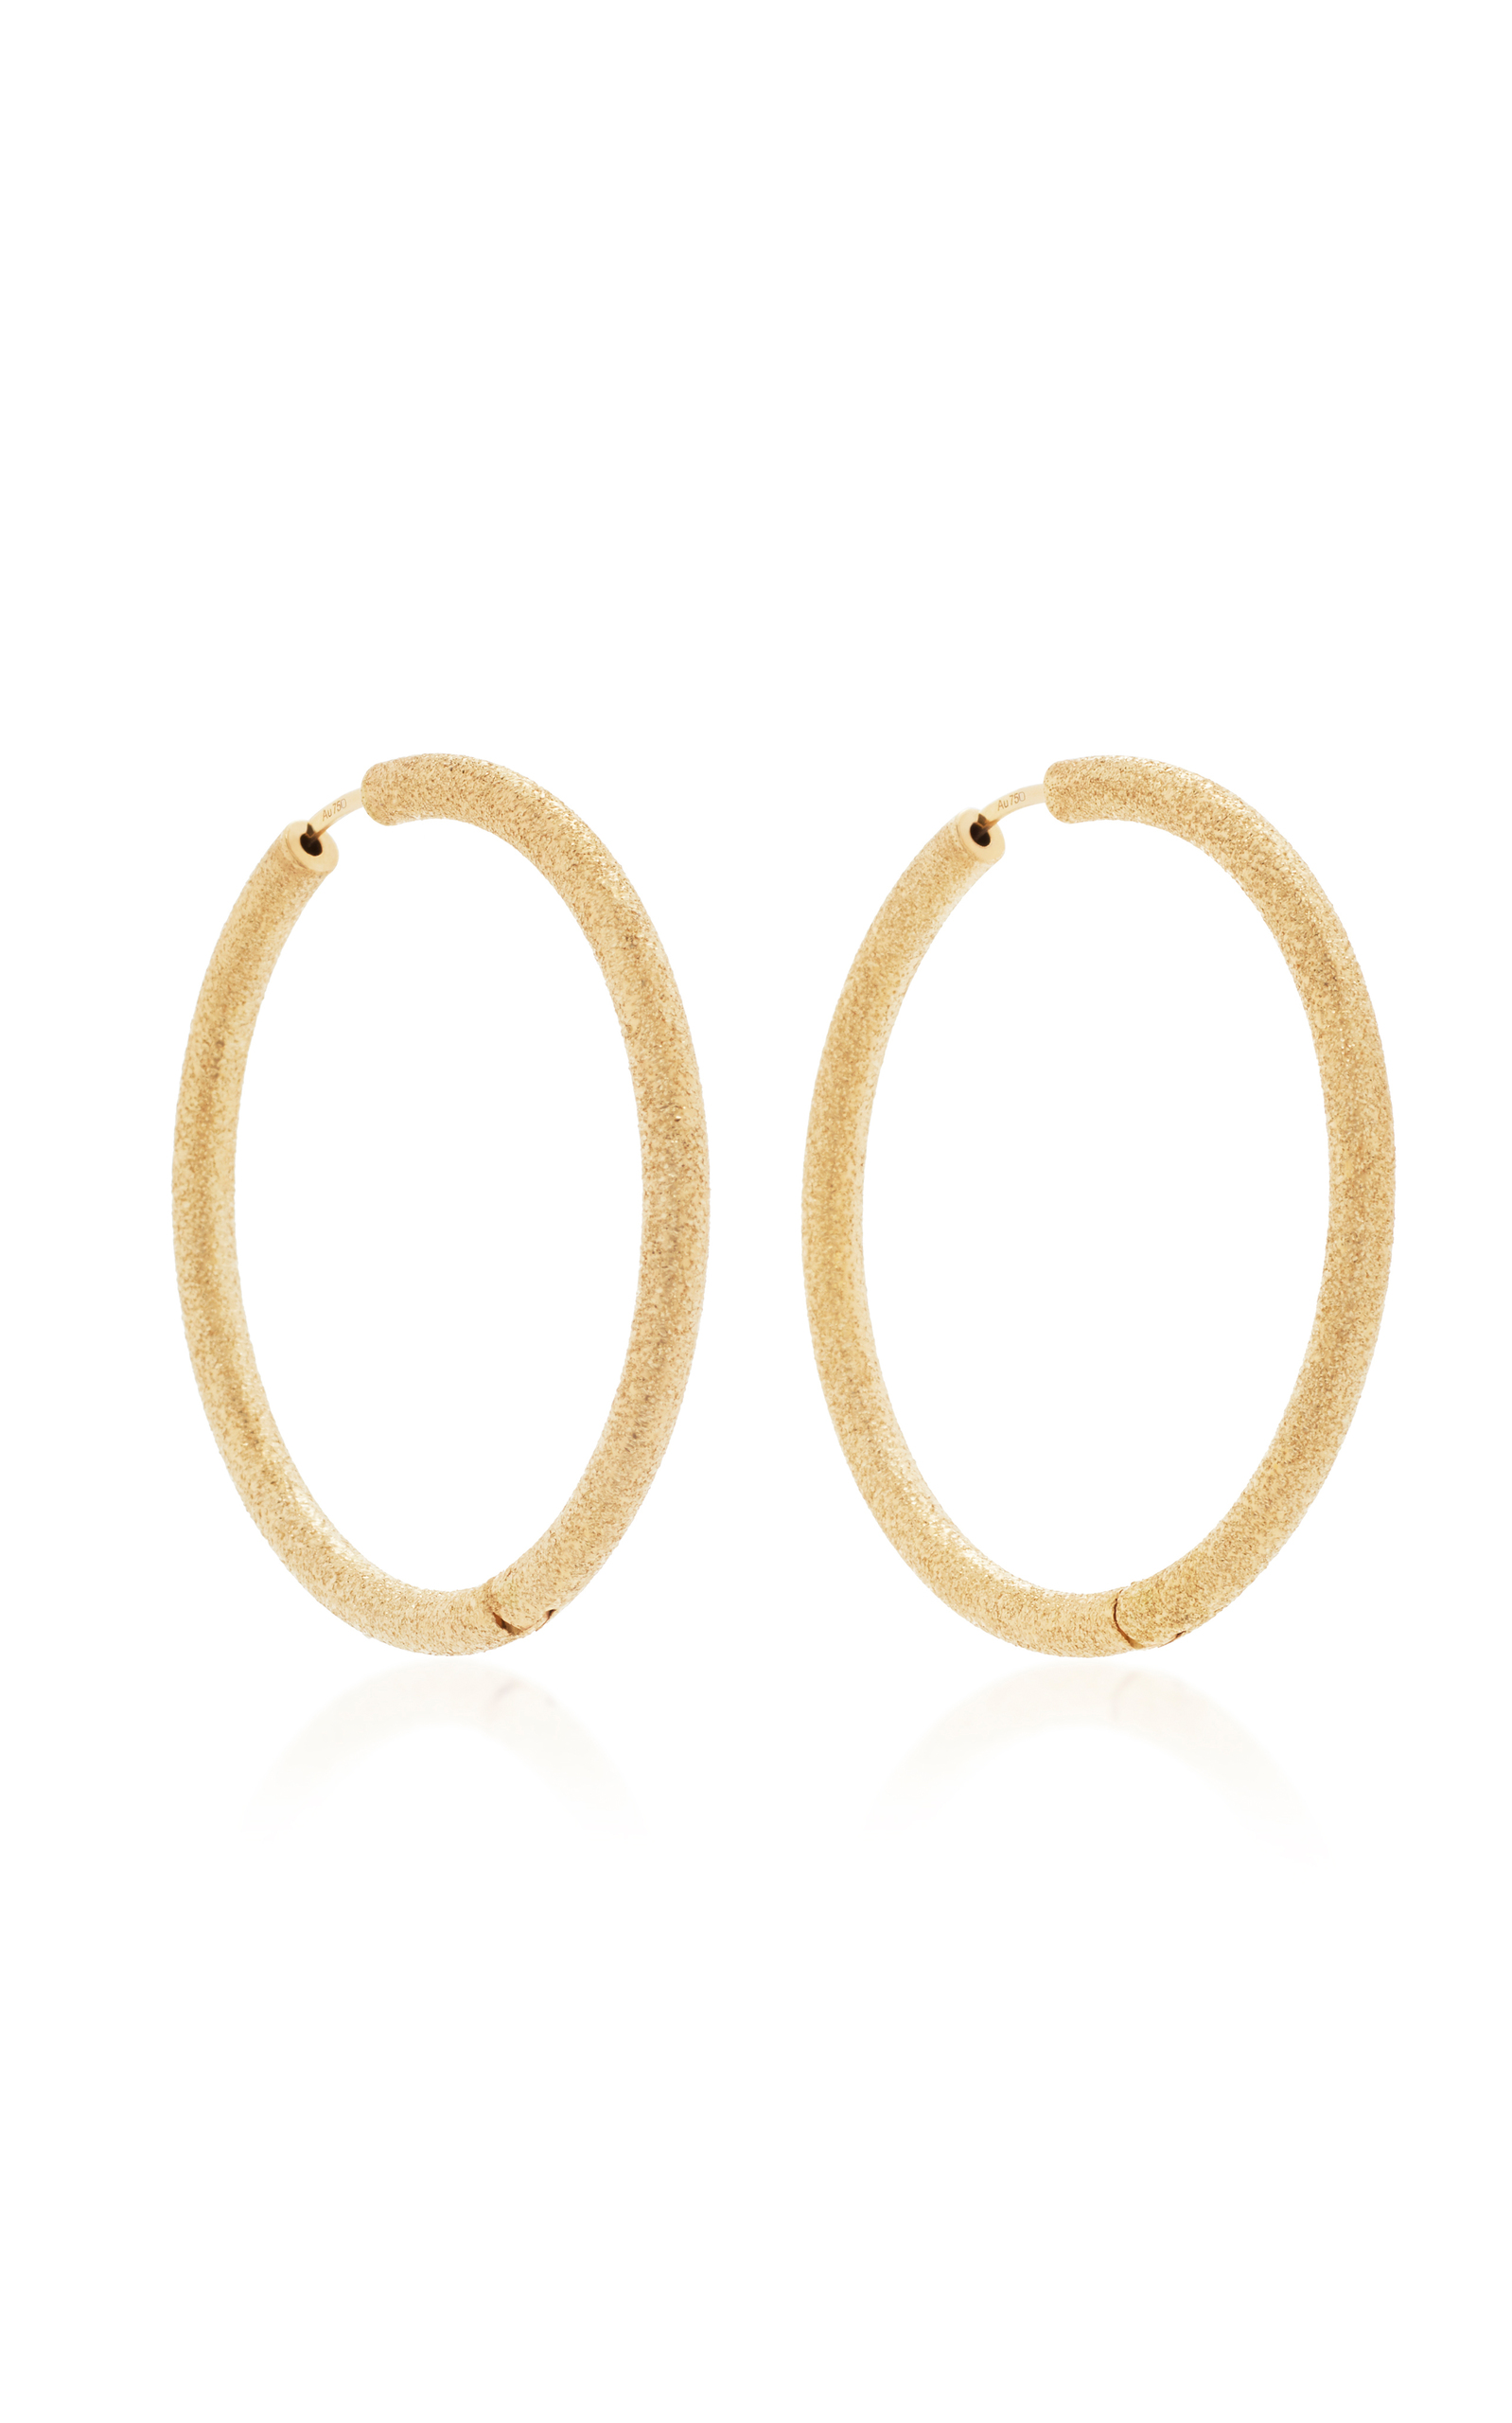 hoop memoire hood gold tw diamond earrings in white